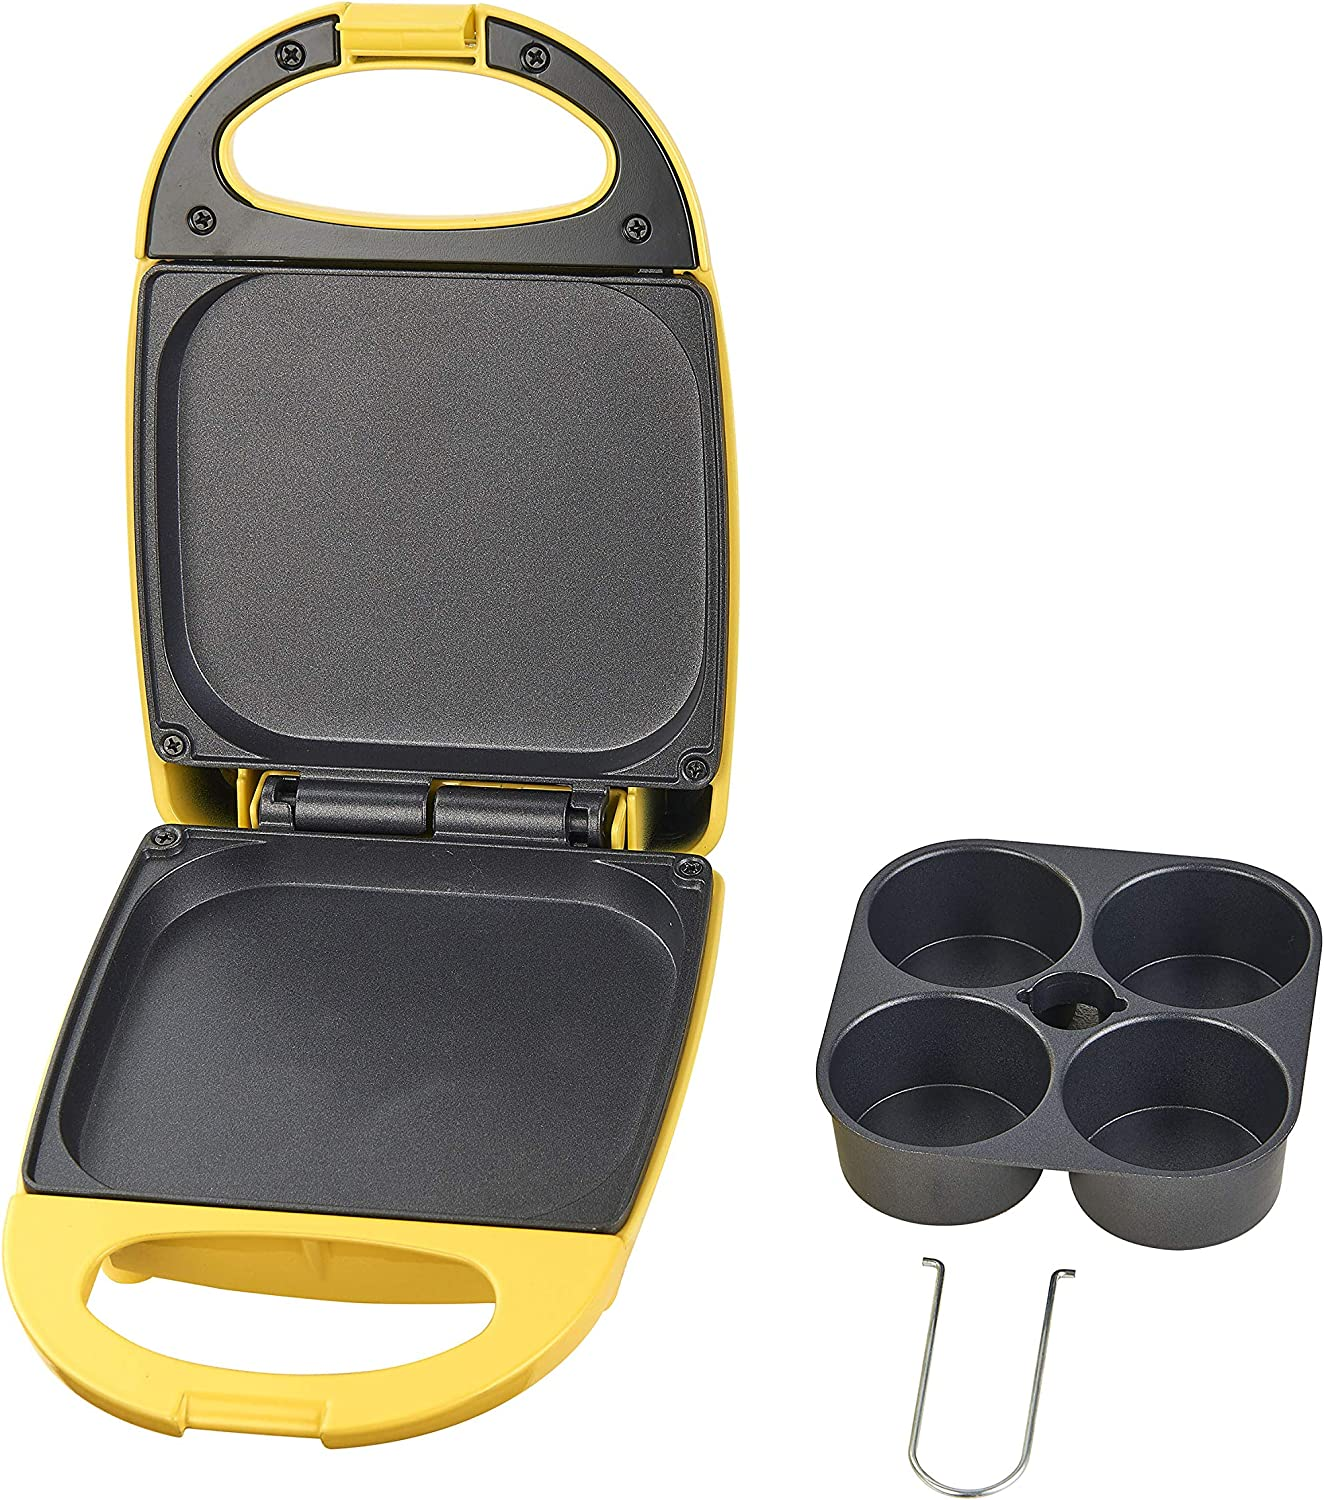 Salton Egg Bite Maker for 4 Single Serve Bites Yellow Non-stick Lunch or Snack SP2042 Perfect for On The Go Breakfast